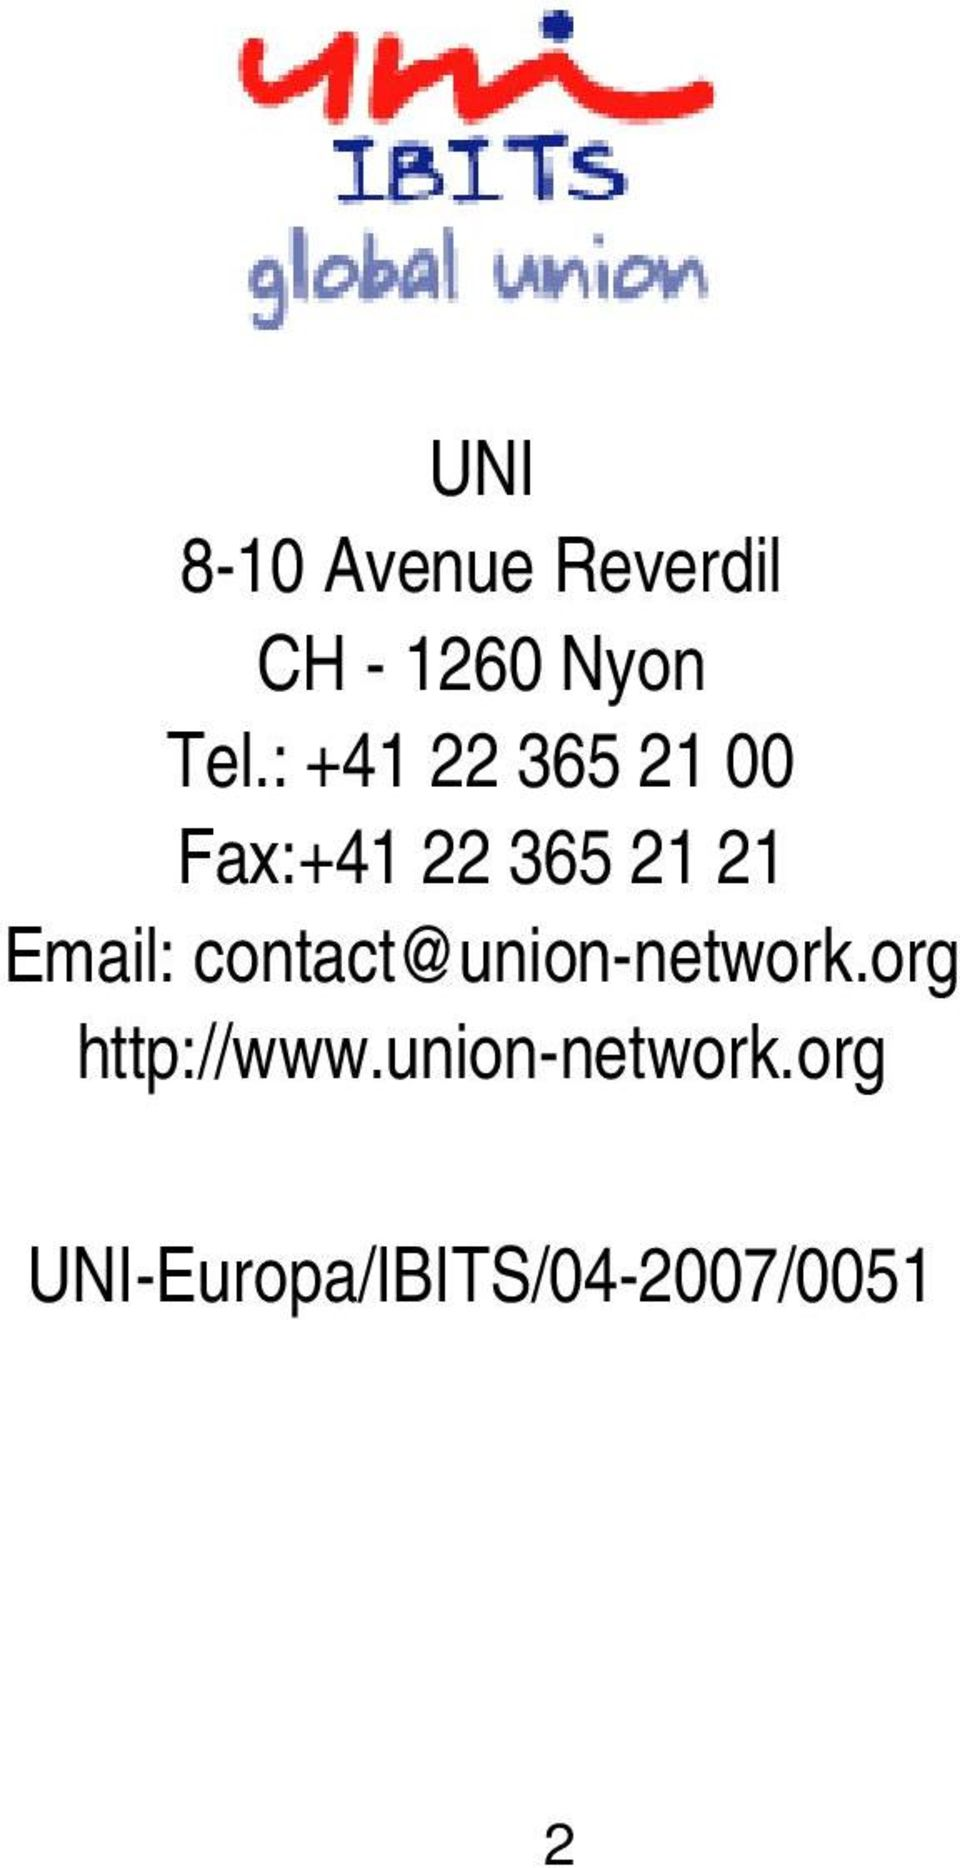 Email: contact@union-network.org http://www.